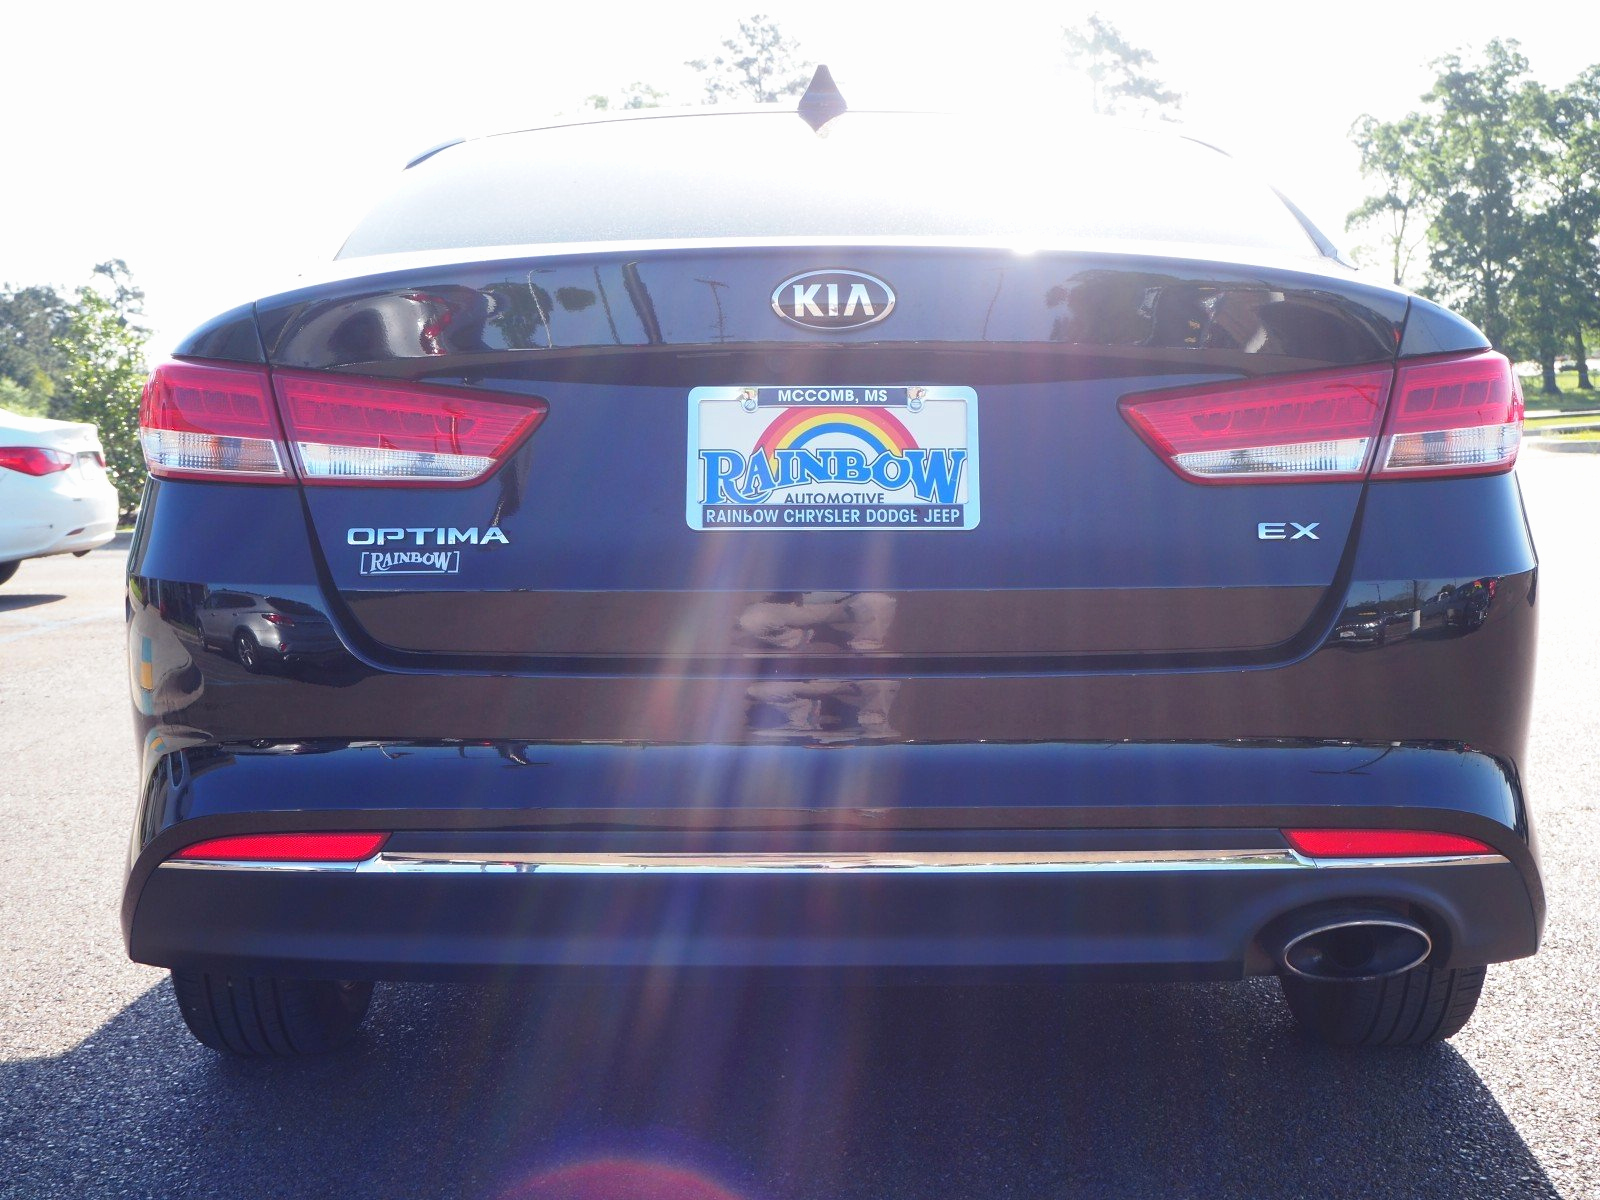 nissan dealership jackson ms new used kia for sale rainbow